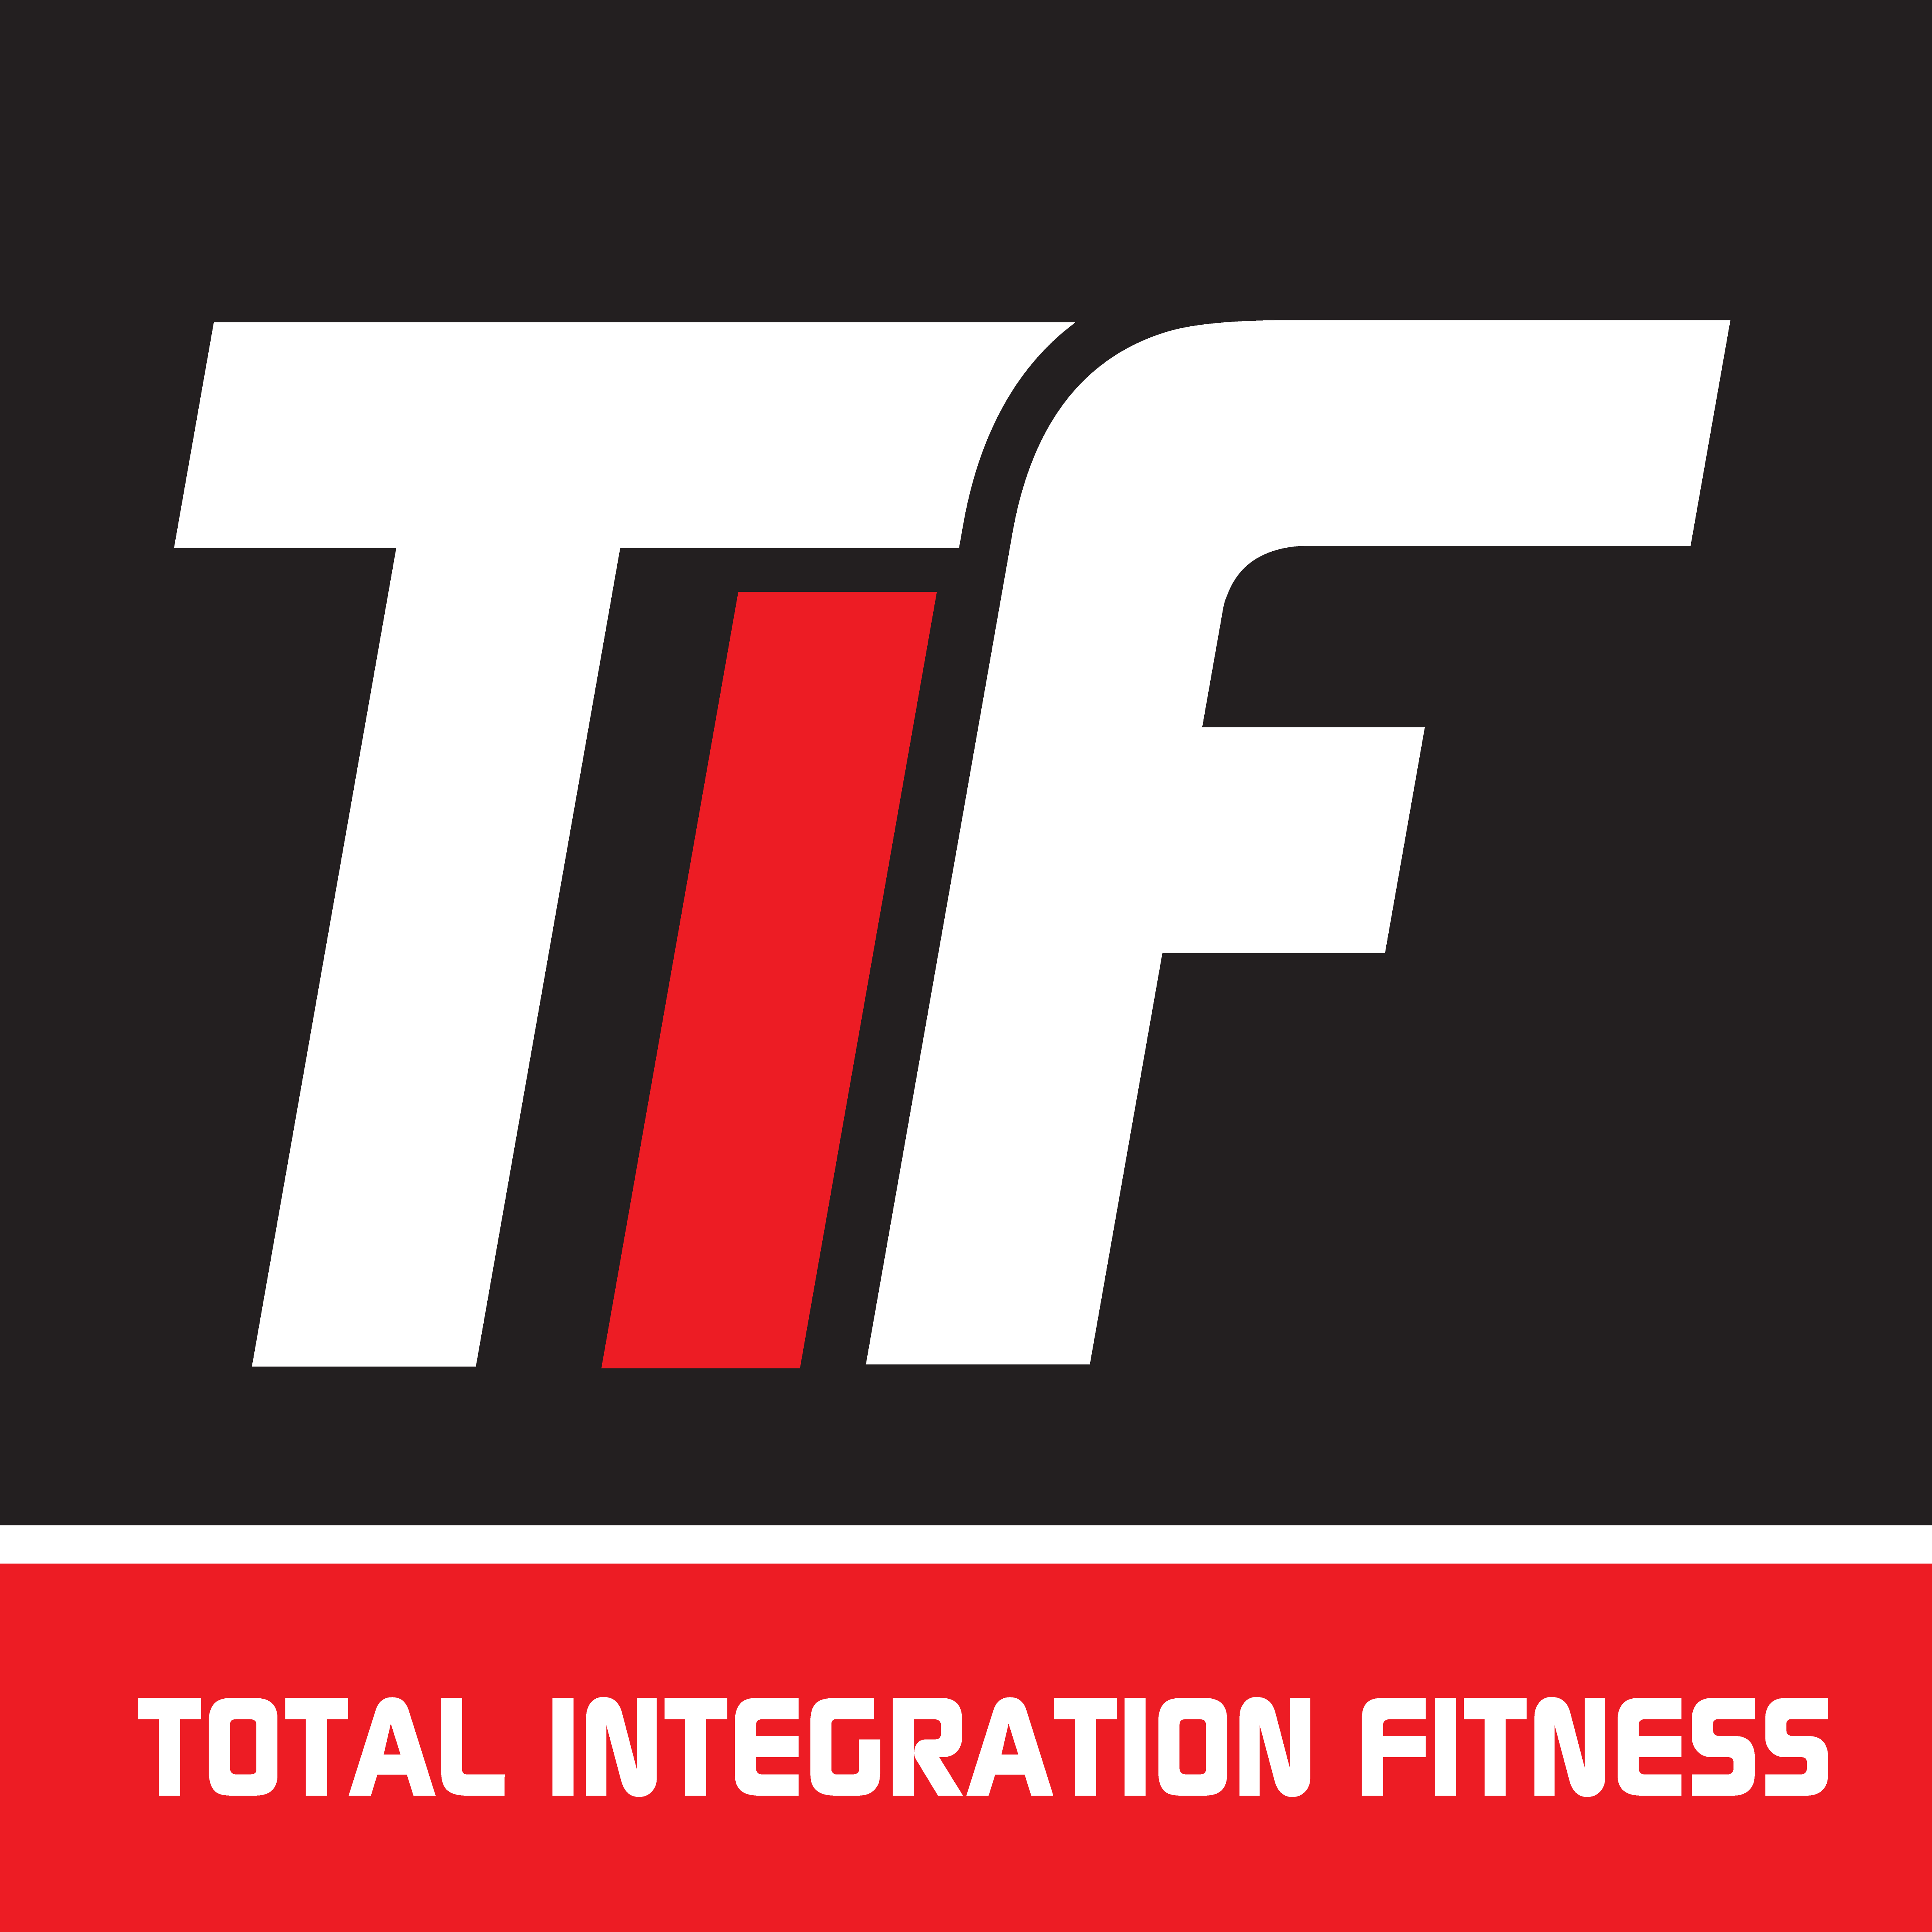 Total Integration Fitness